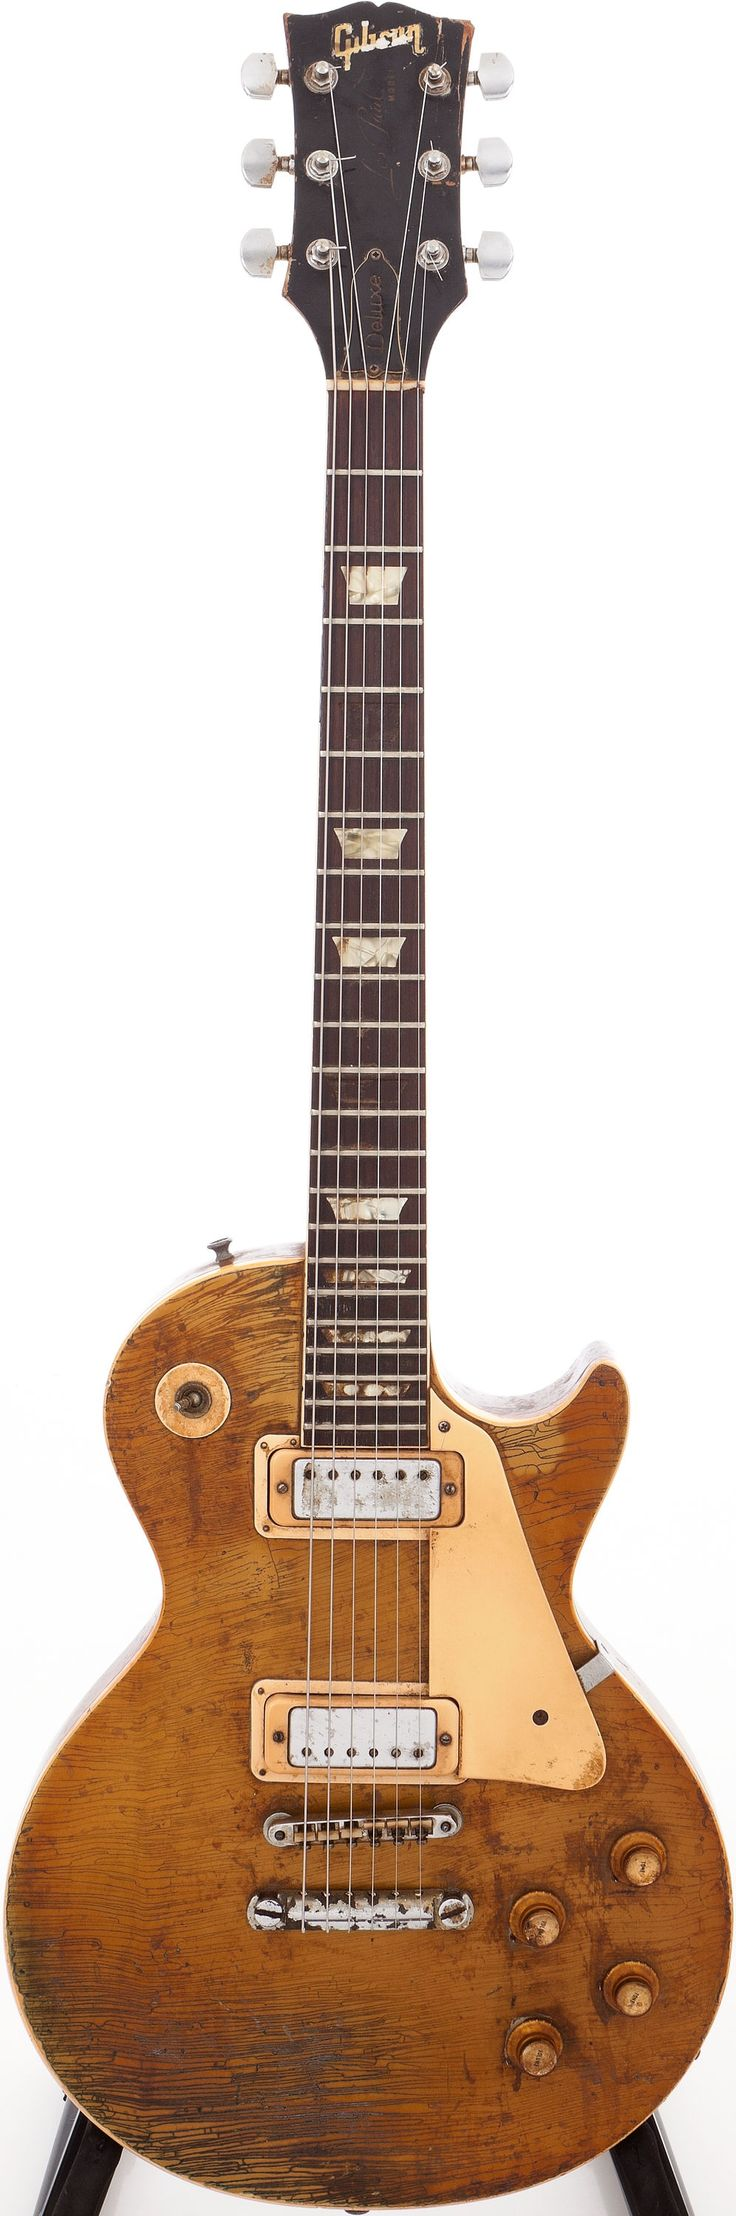 '69 Les Paul goldtop that looks like it has been to hell and back